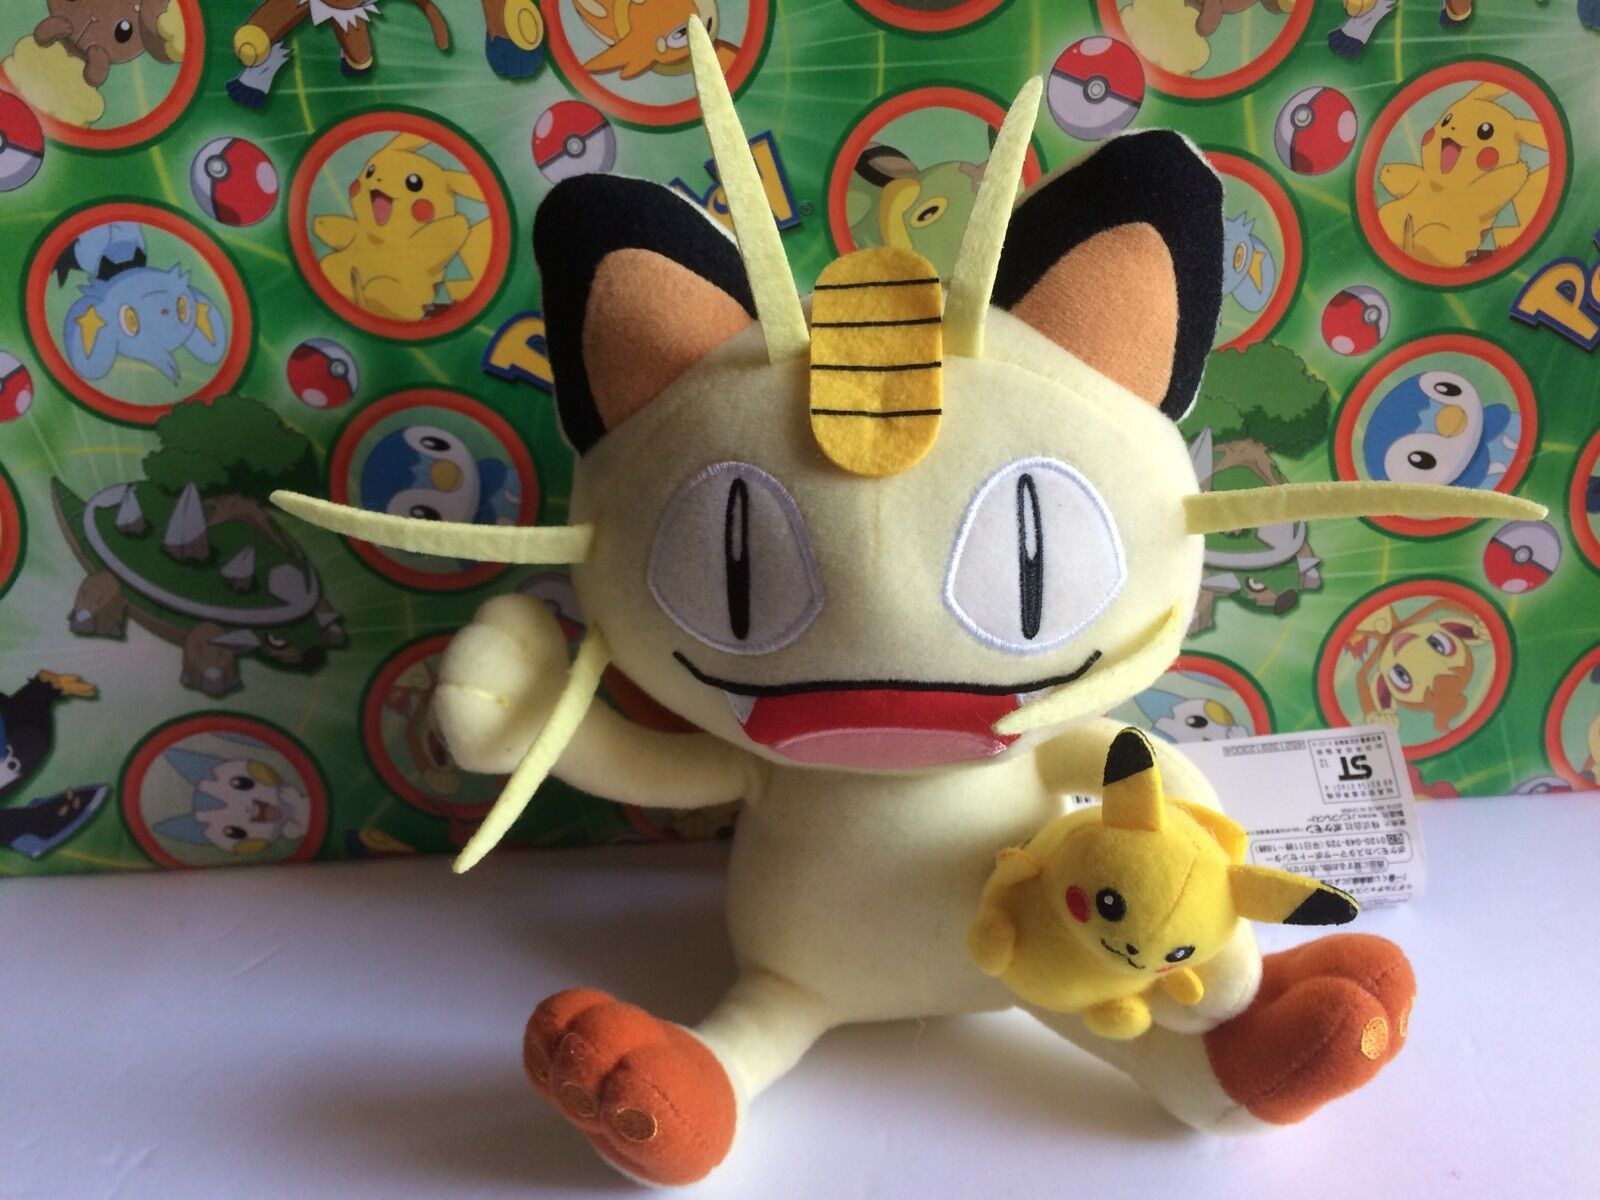 Pokemon Pokemon Pokemon Center Plush Pikachu Meowth 2012 Pokedoll 8  Stuffed animal figure New a051d8